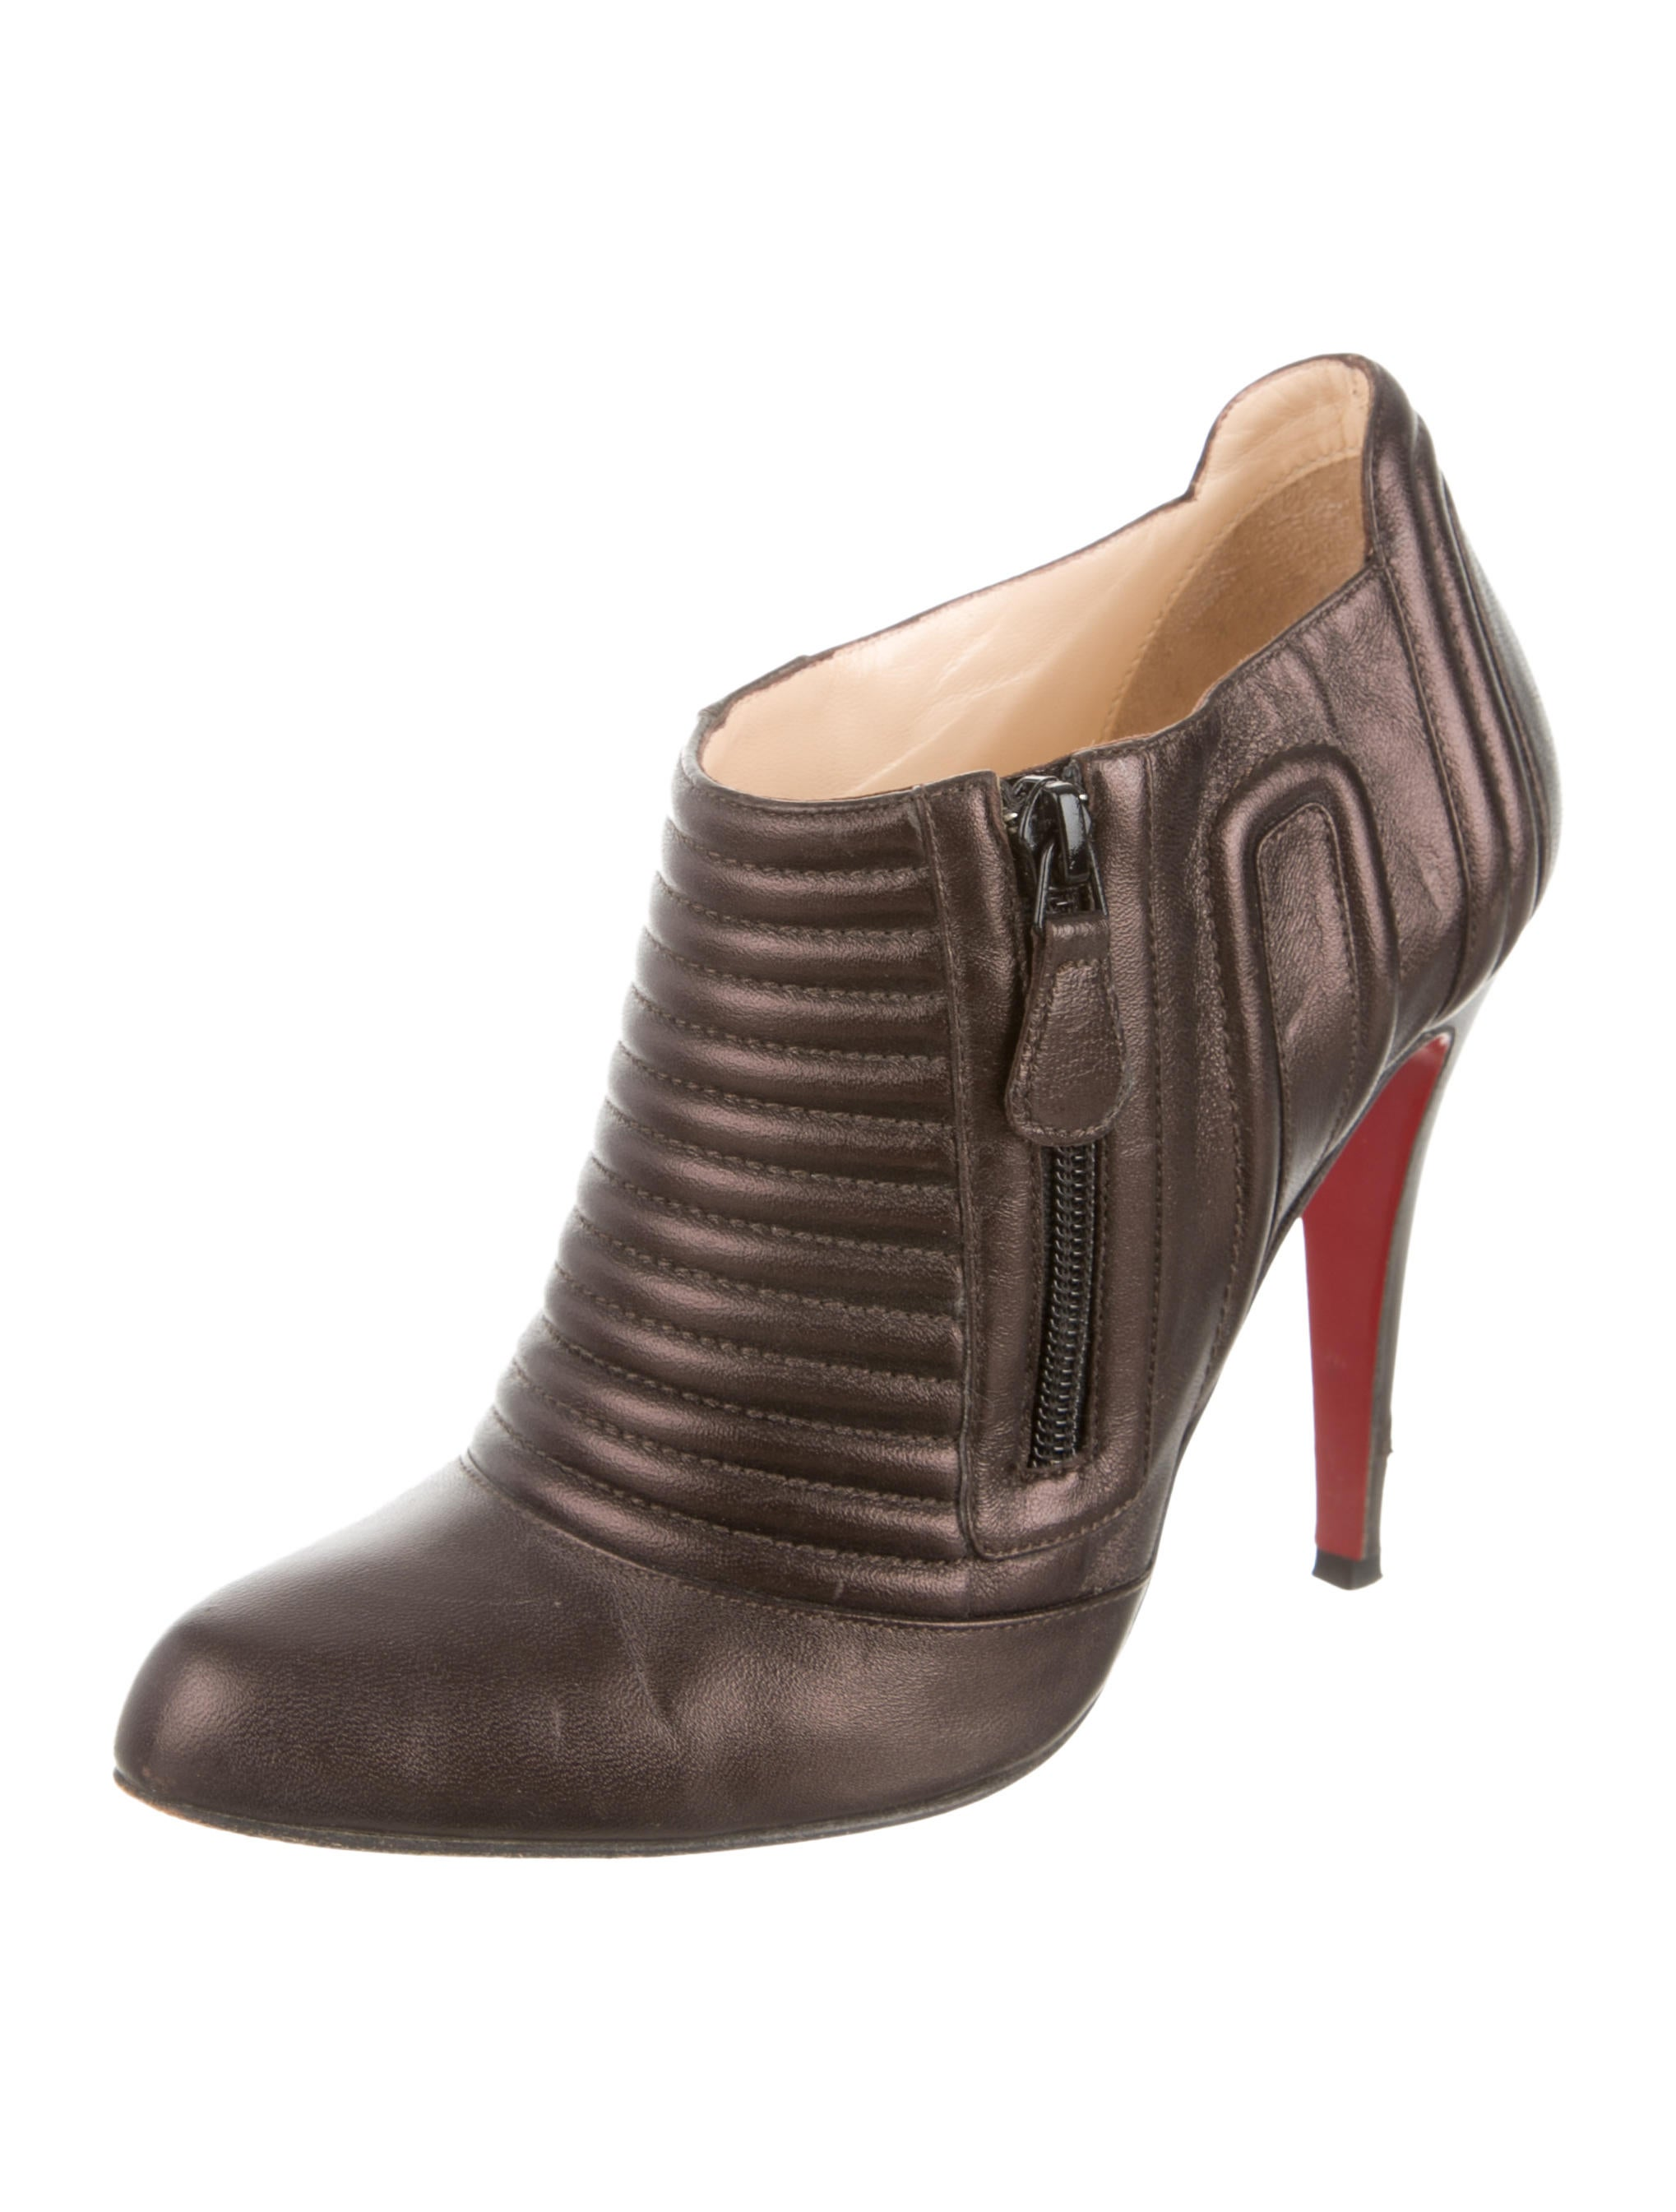 christian louboutin leather pointed toe ankle boots